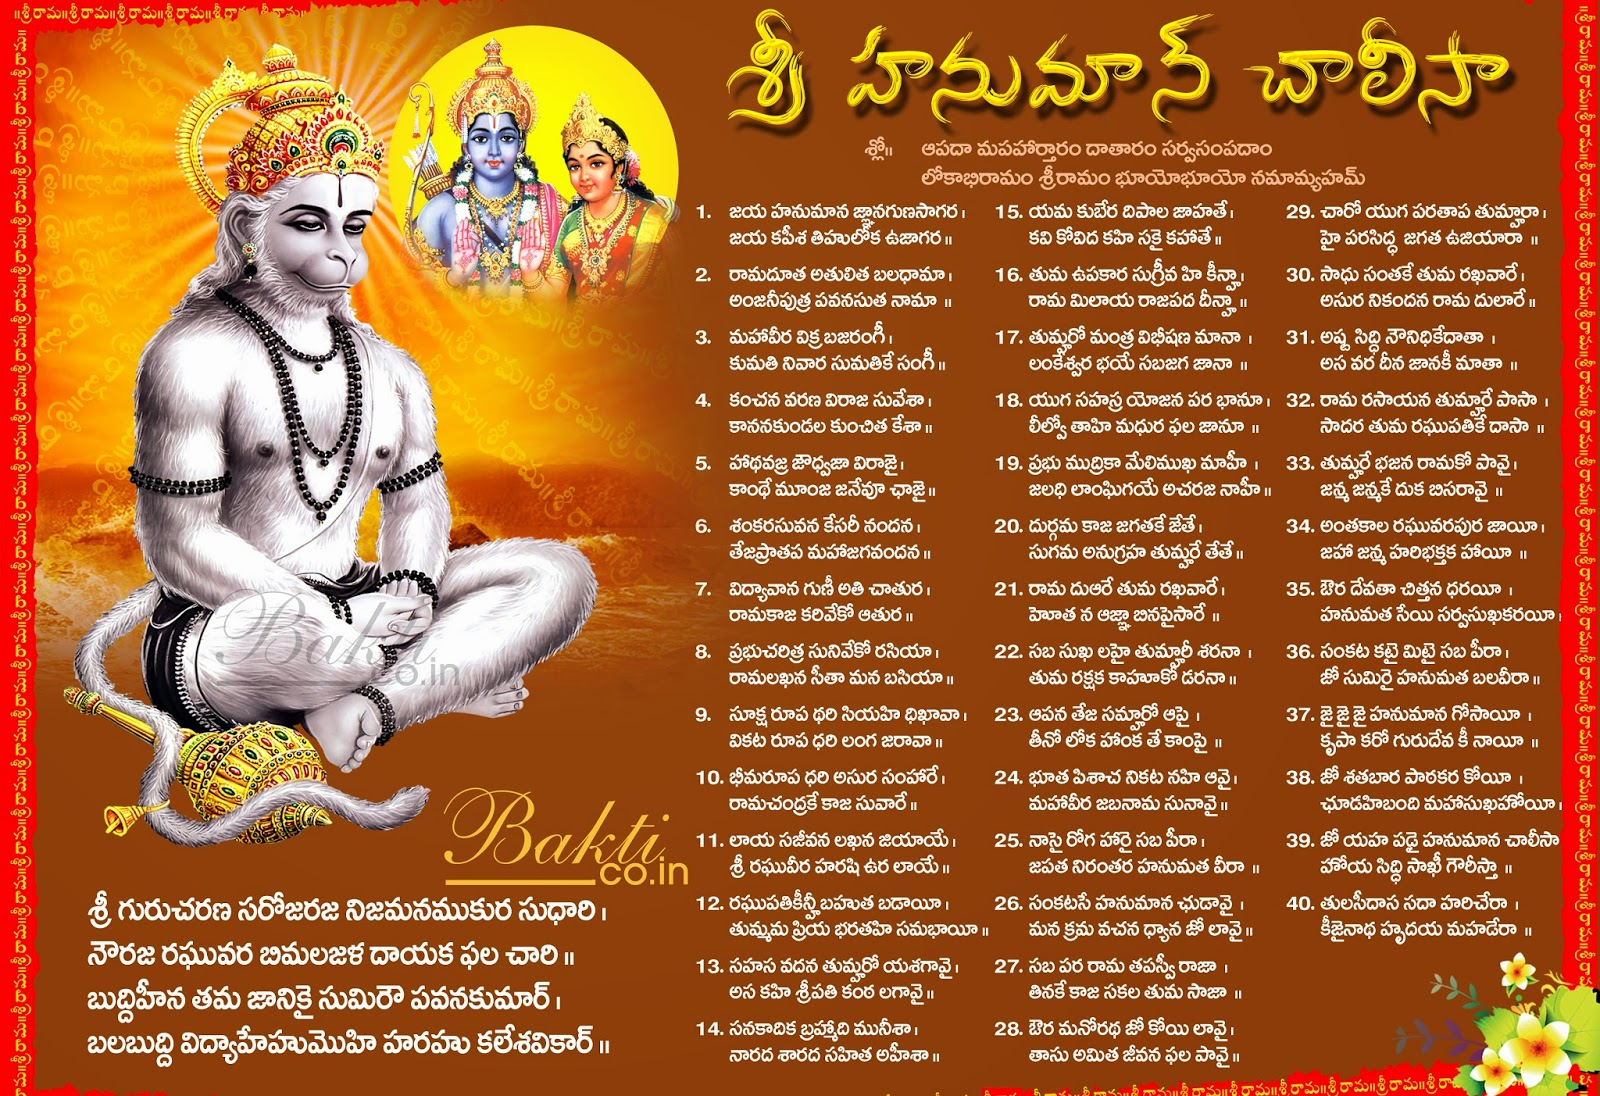 Hanuman Chalisa Picture Telugu for free download